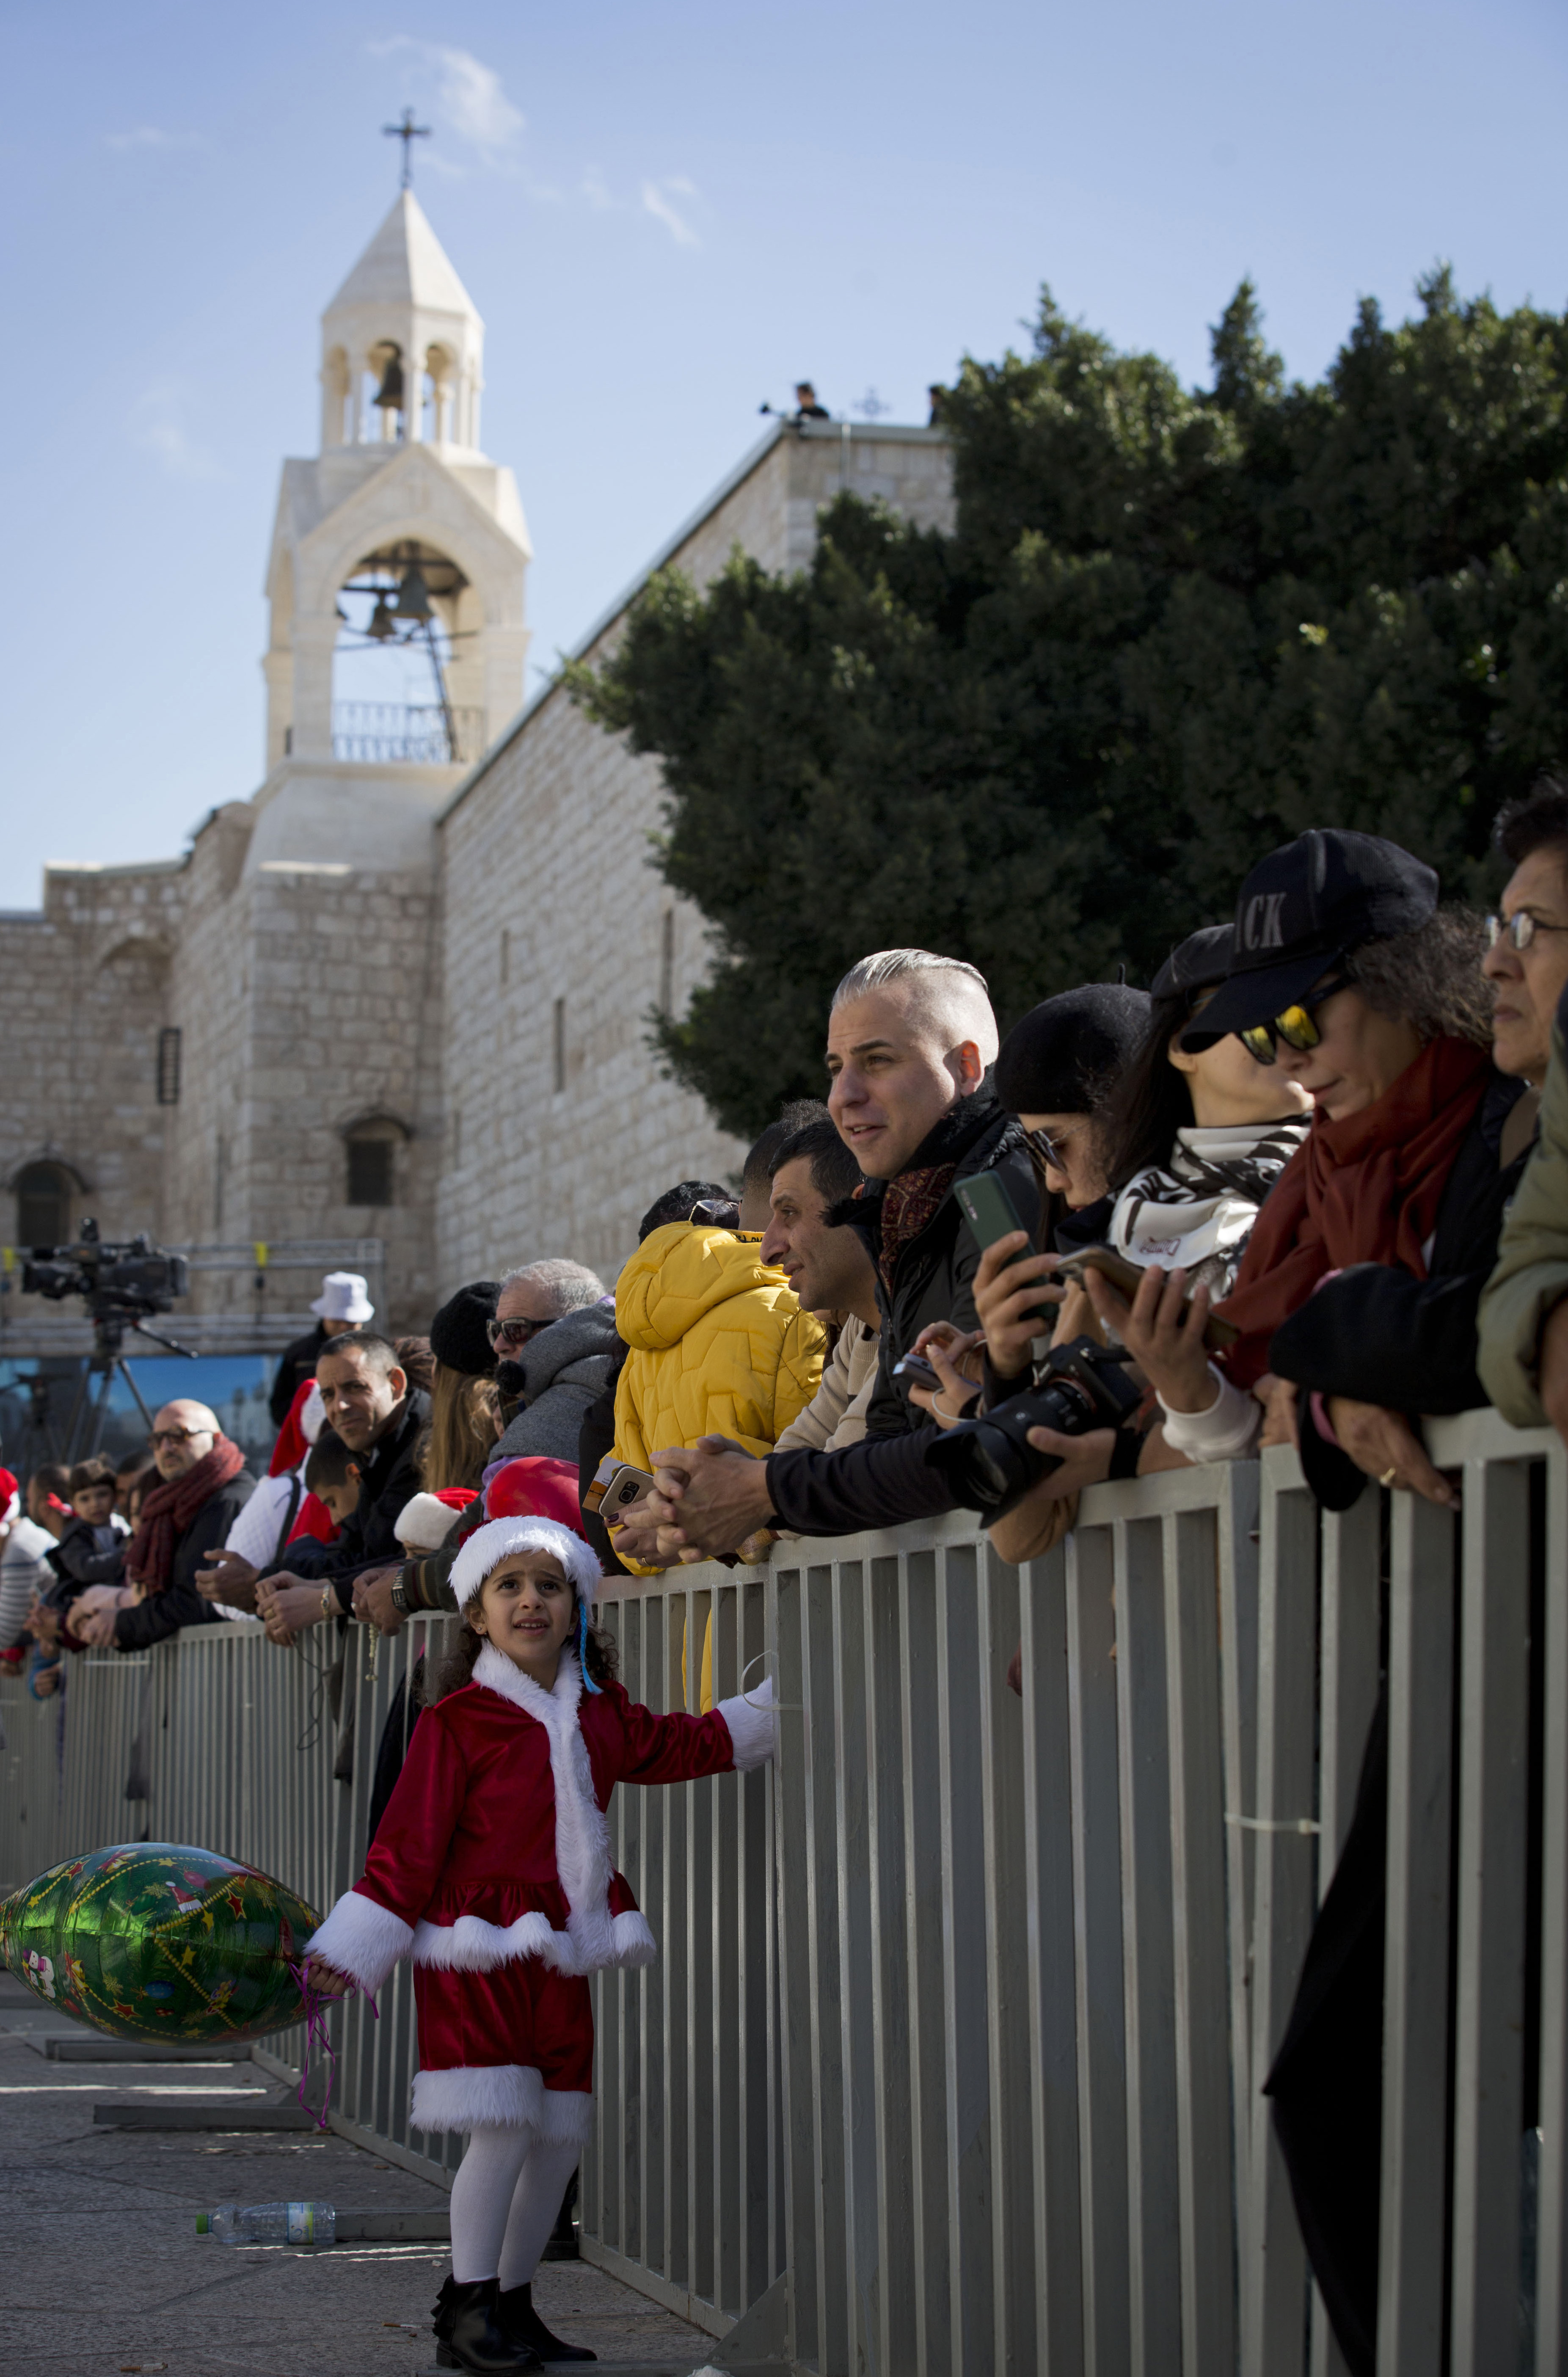 A girl dressed as Santa Claus watches Christmas celebrations outside the Church of the Nativity, built atop the site where Christians believe Jesus Christ was born, on Christmas Eve, in the West Bank City of Bethlehem, Tuesday, Dec. 24, 2019. (AP Photo/Majdi Mohammed)